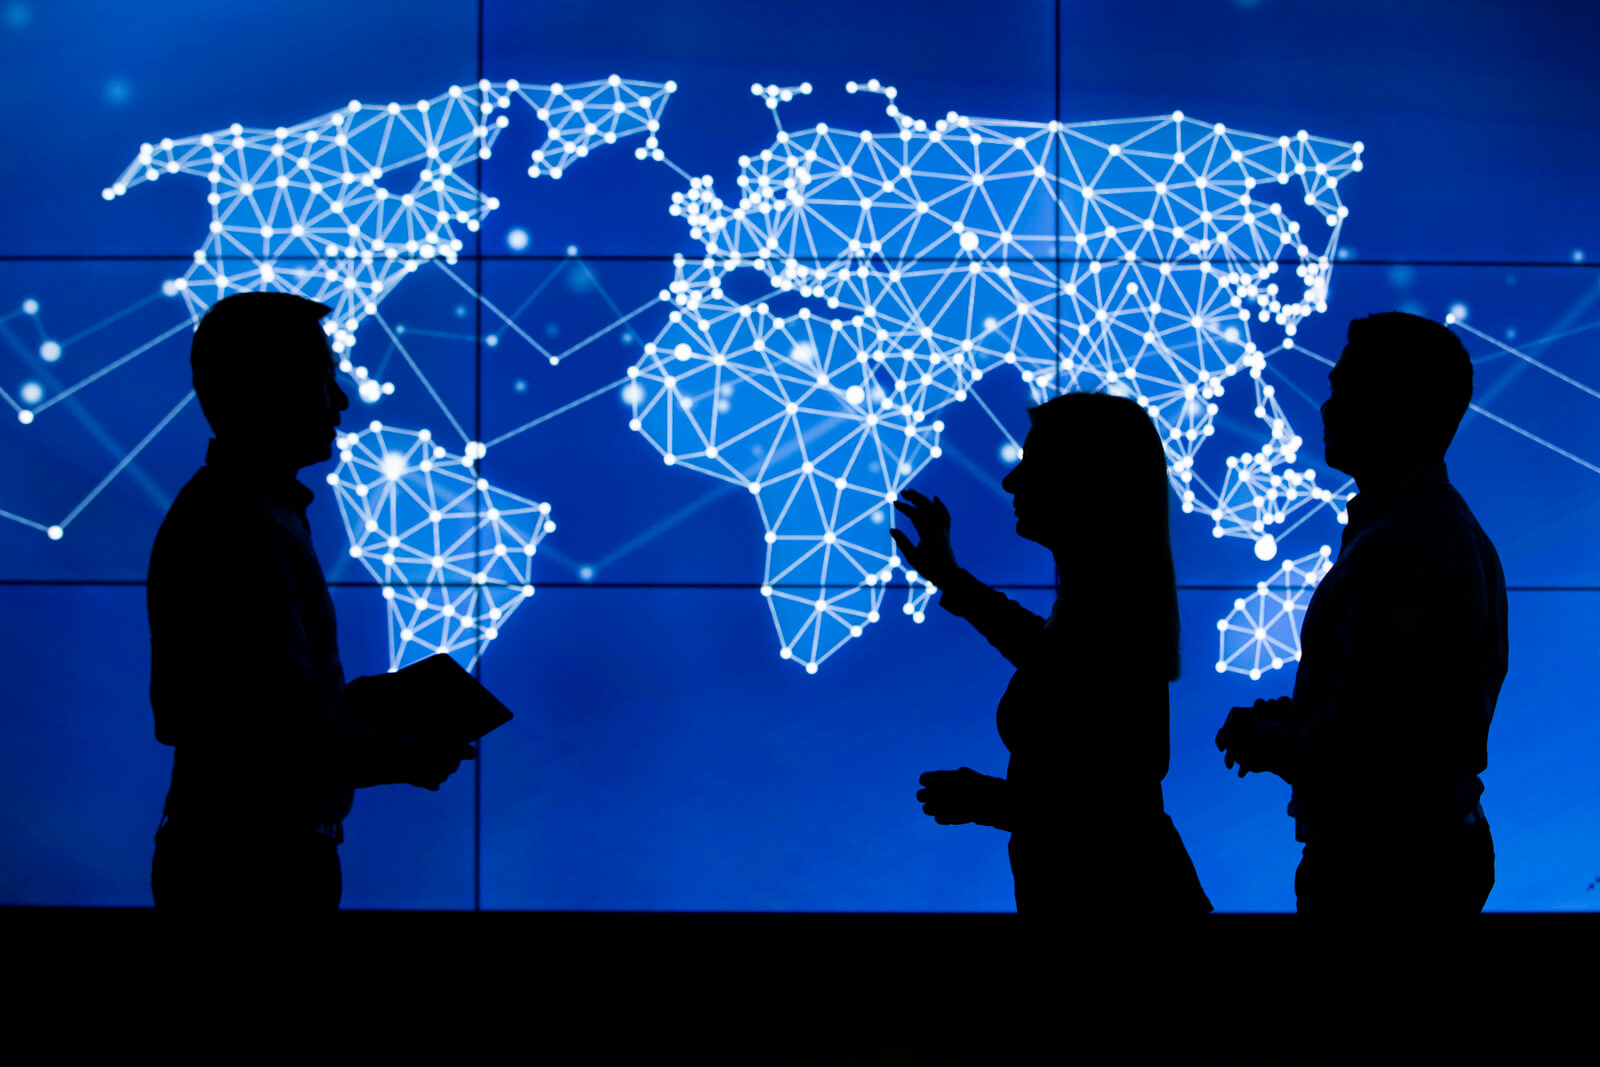 3 people silouette against screen with graphic world map in blue